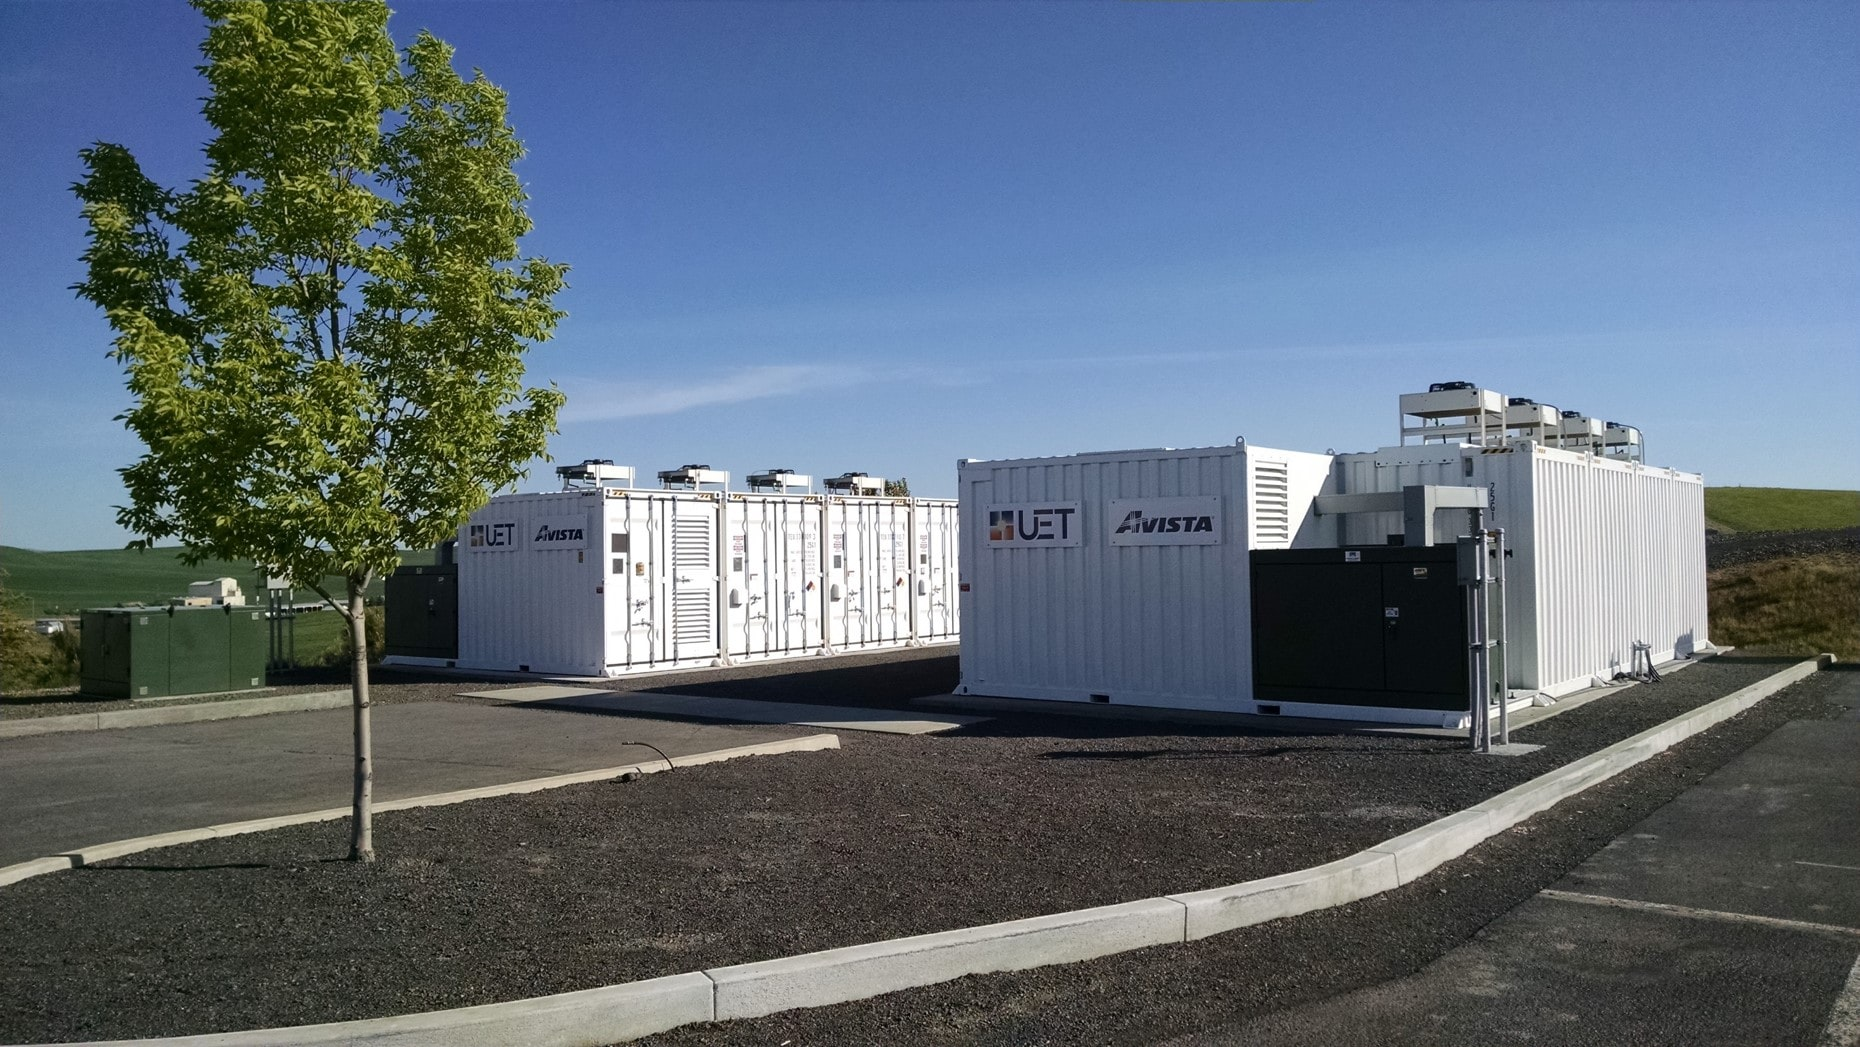 Business News: Swatch Is Going To Make Car Batteries To Compete With Tesla (Seriously) Business News: Swatch Is Going To Make Car Batteries To Compete With Tesla (Seriously) 1 MW 4 MWh Turner Energy Storage Project in Pullman WA